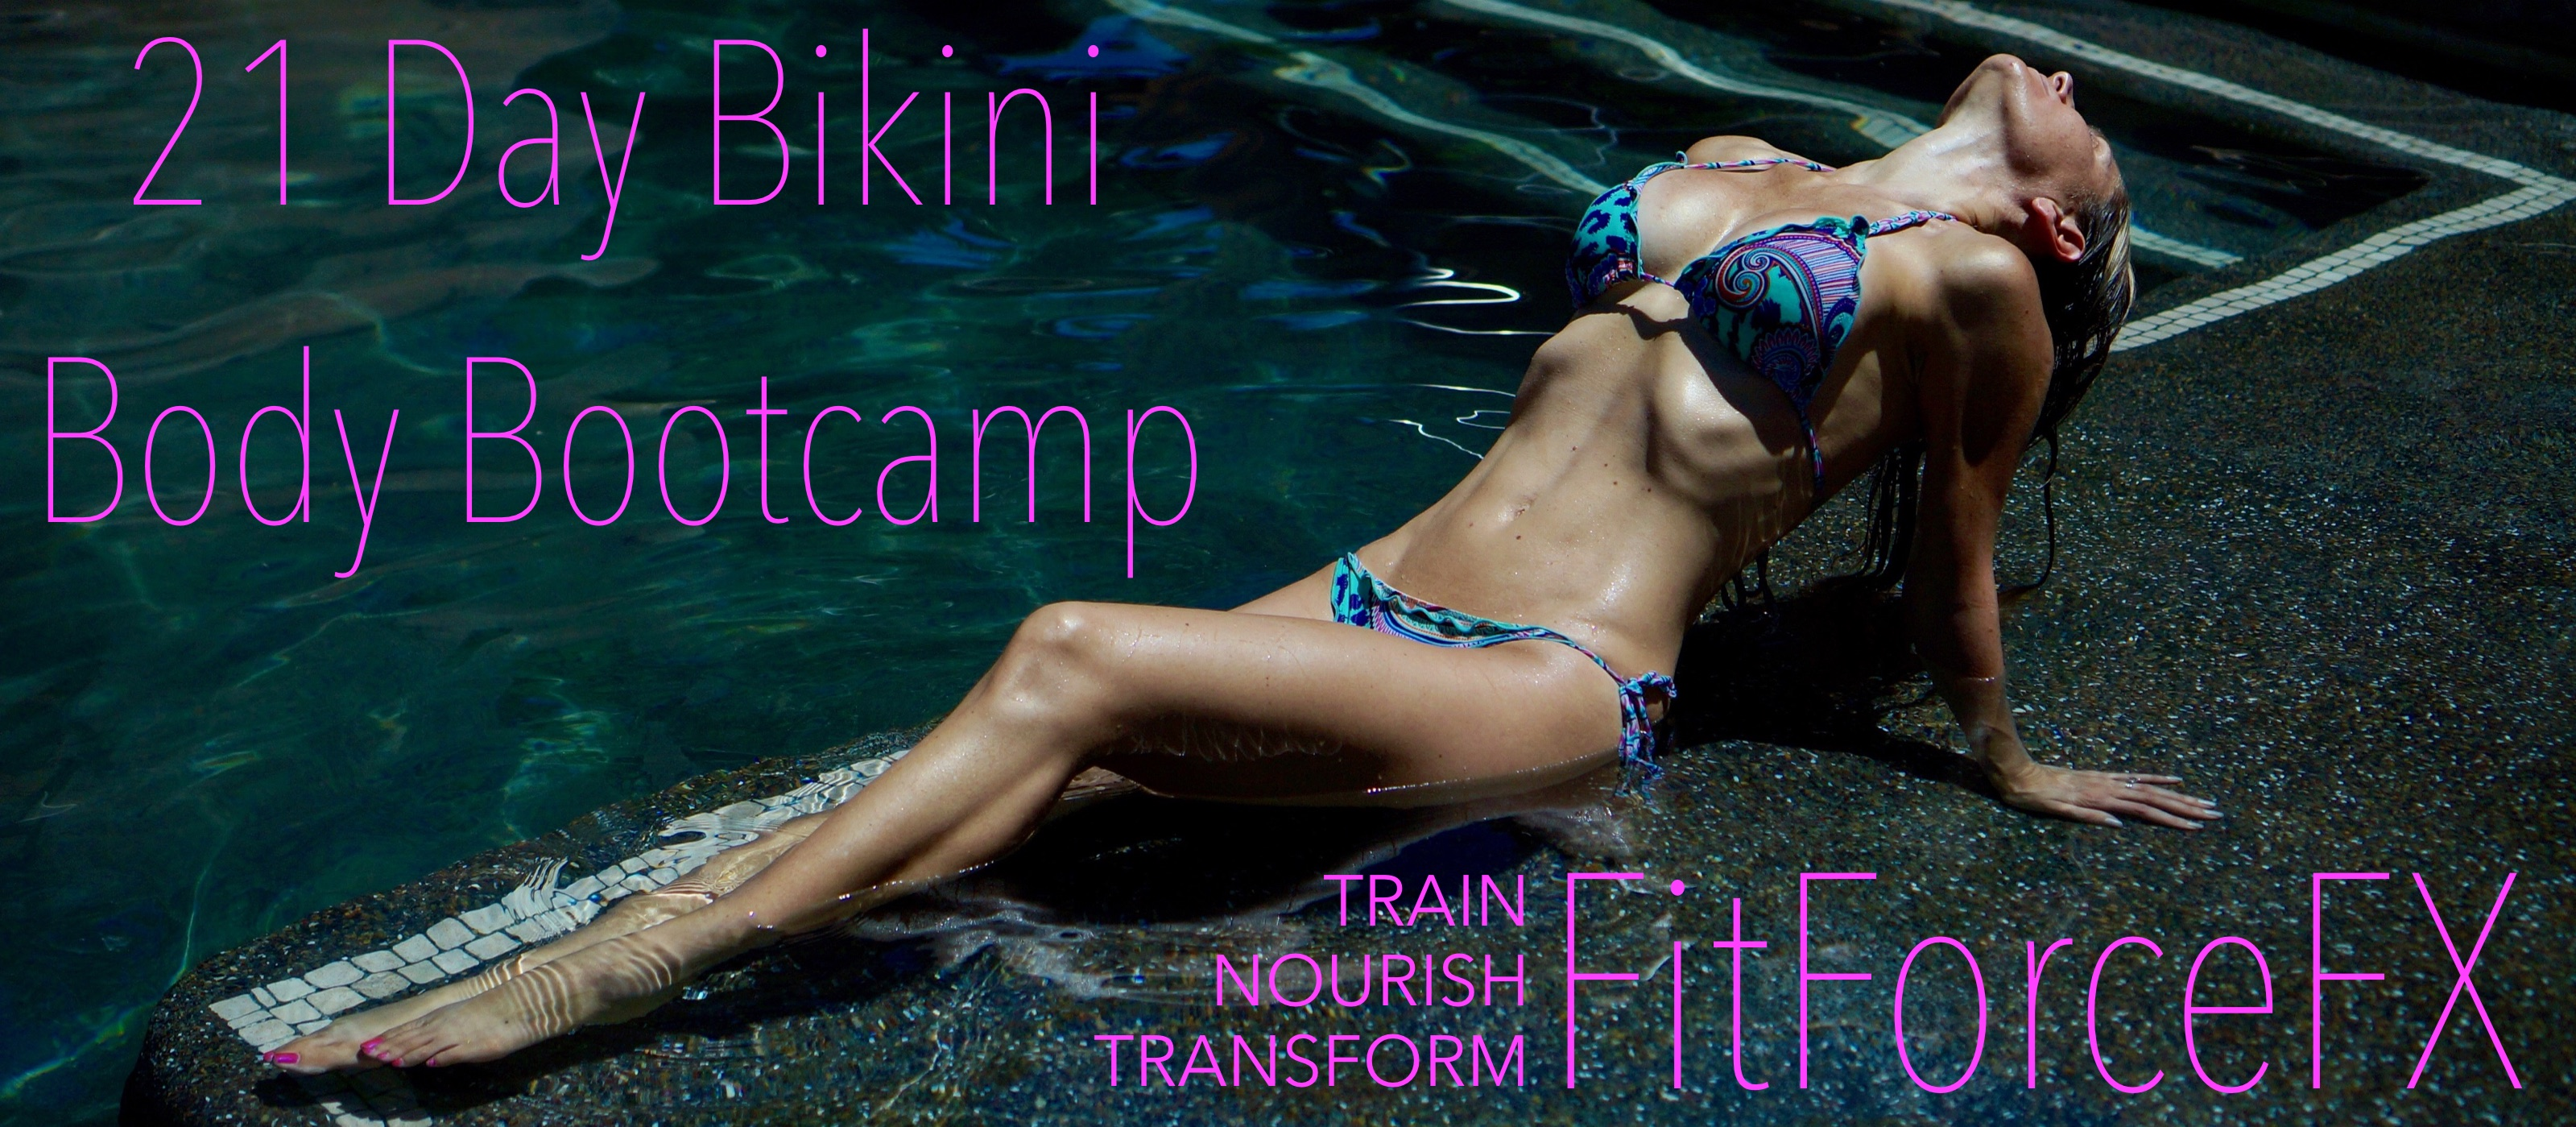 21 Day Bikini Body Bootcamp • Week 2